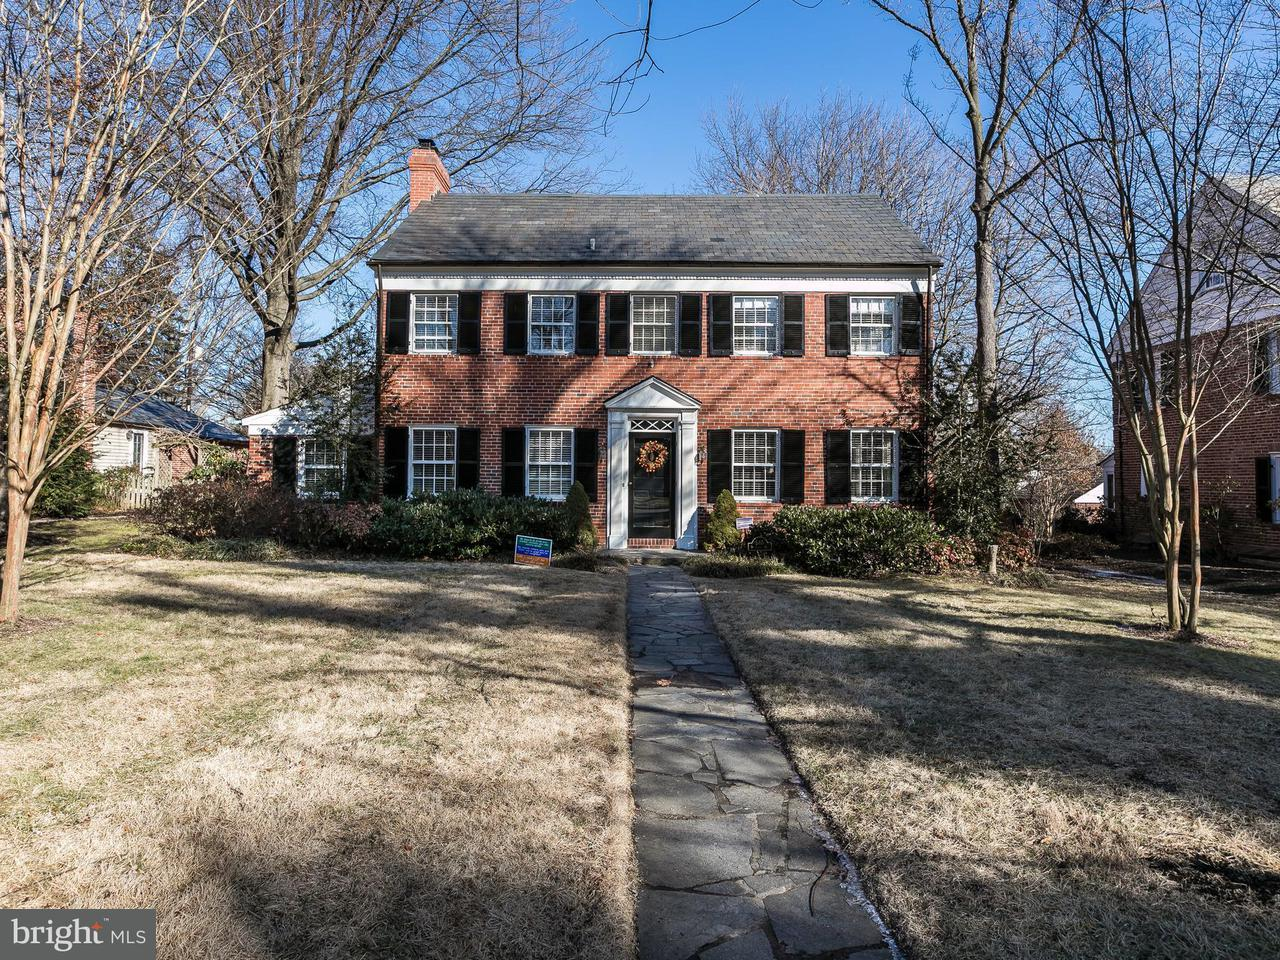 Homeland Homes For Sales Monument Sotheby S